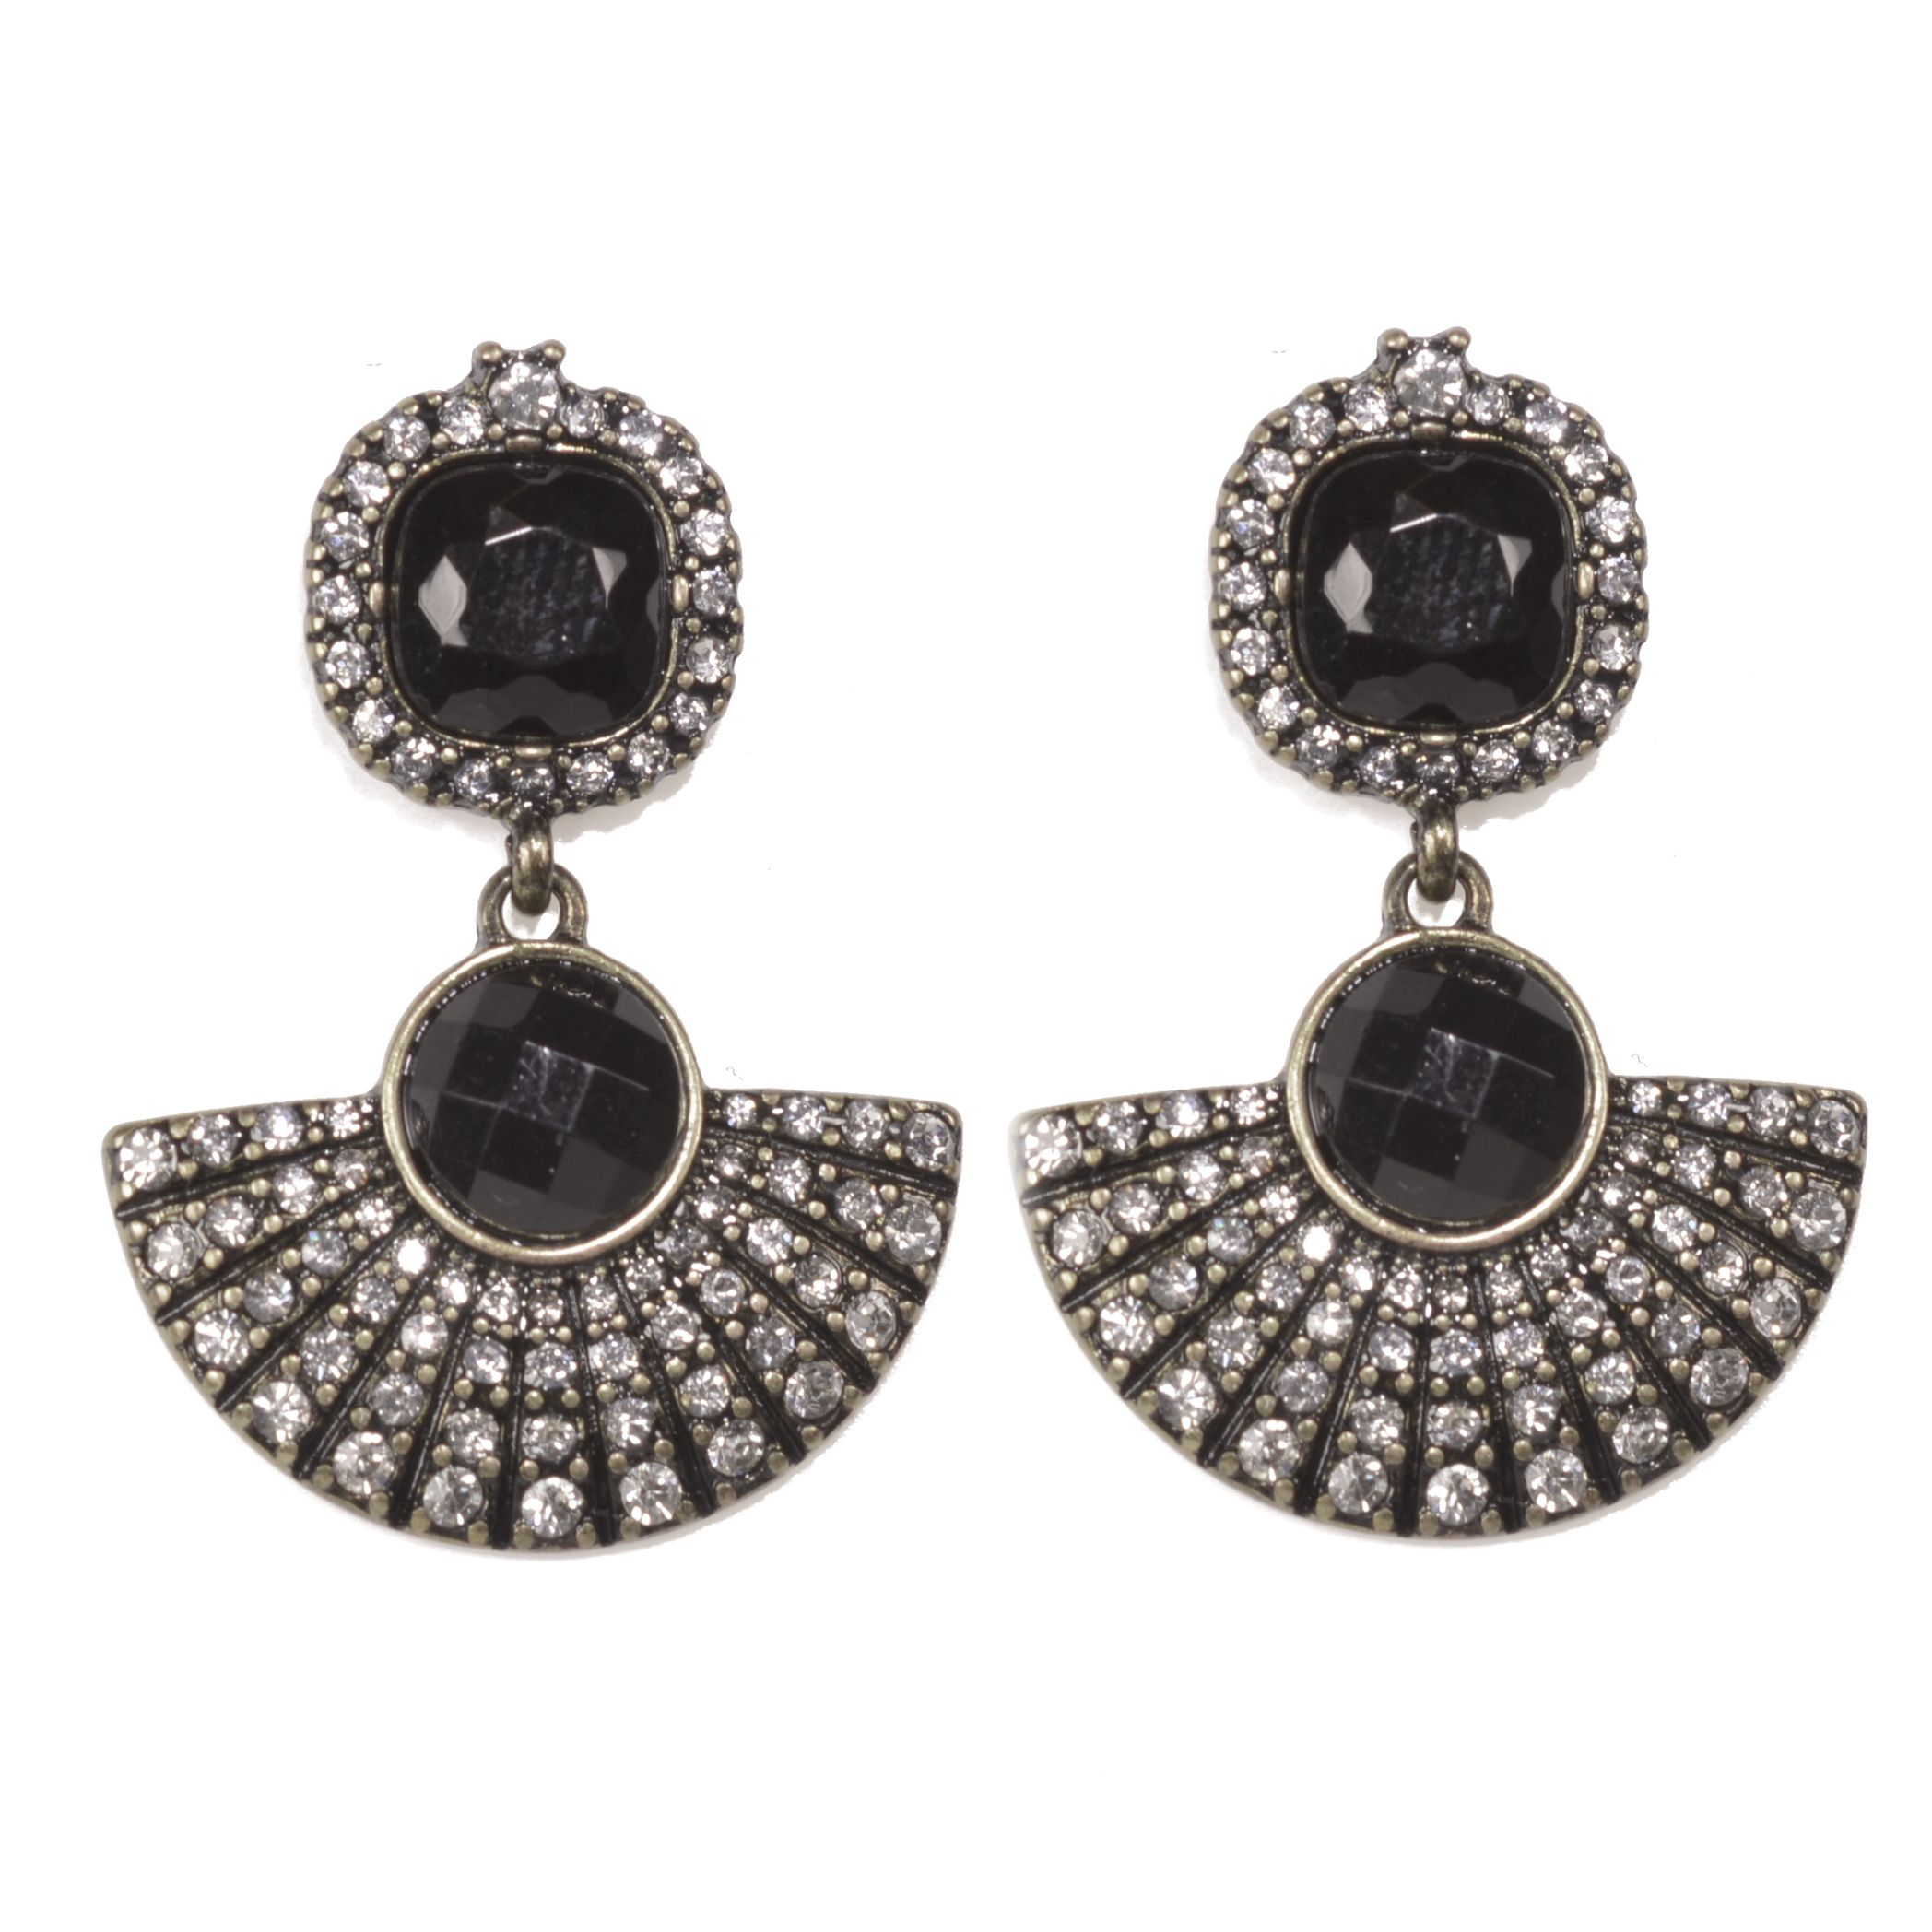 Art Deco Style Earrings Uk X Nl Fabulous Fashion Jewellery Art Deco Statement Earrings With Black Crystal Detail